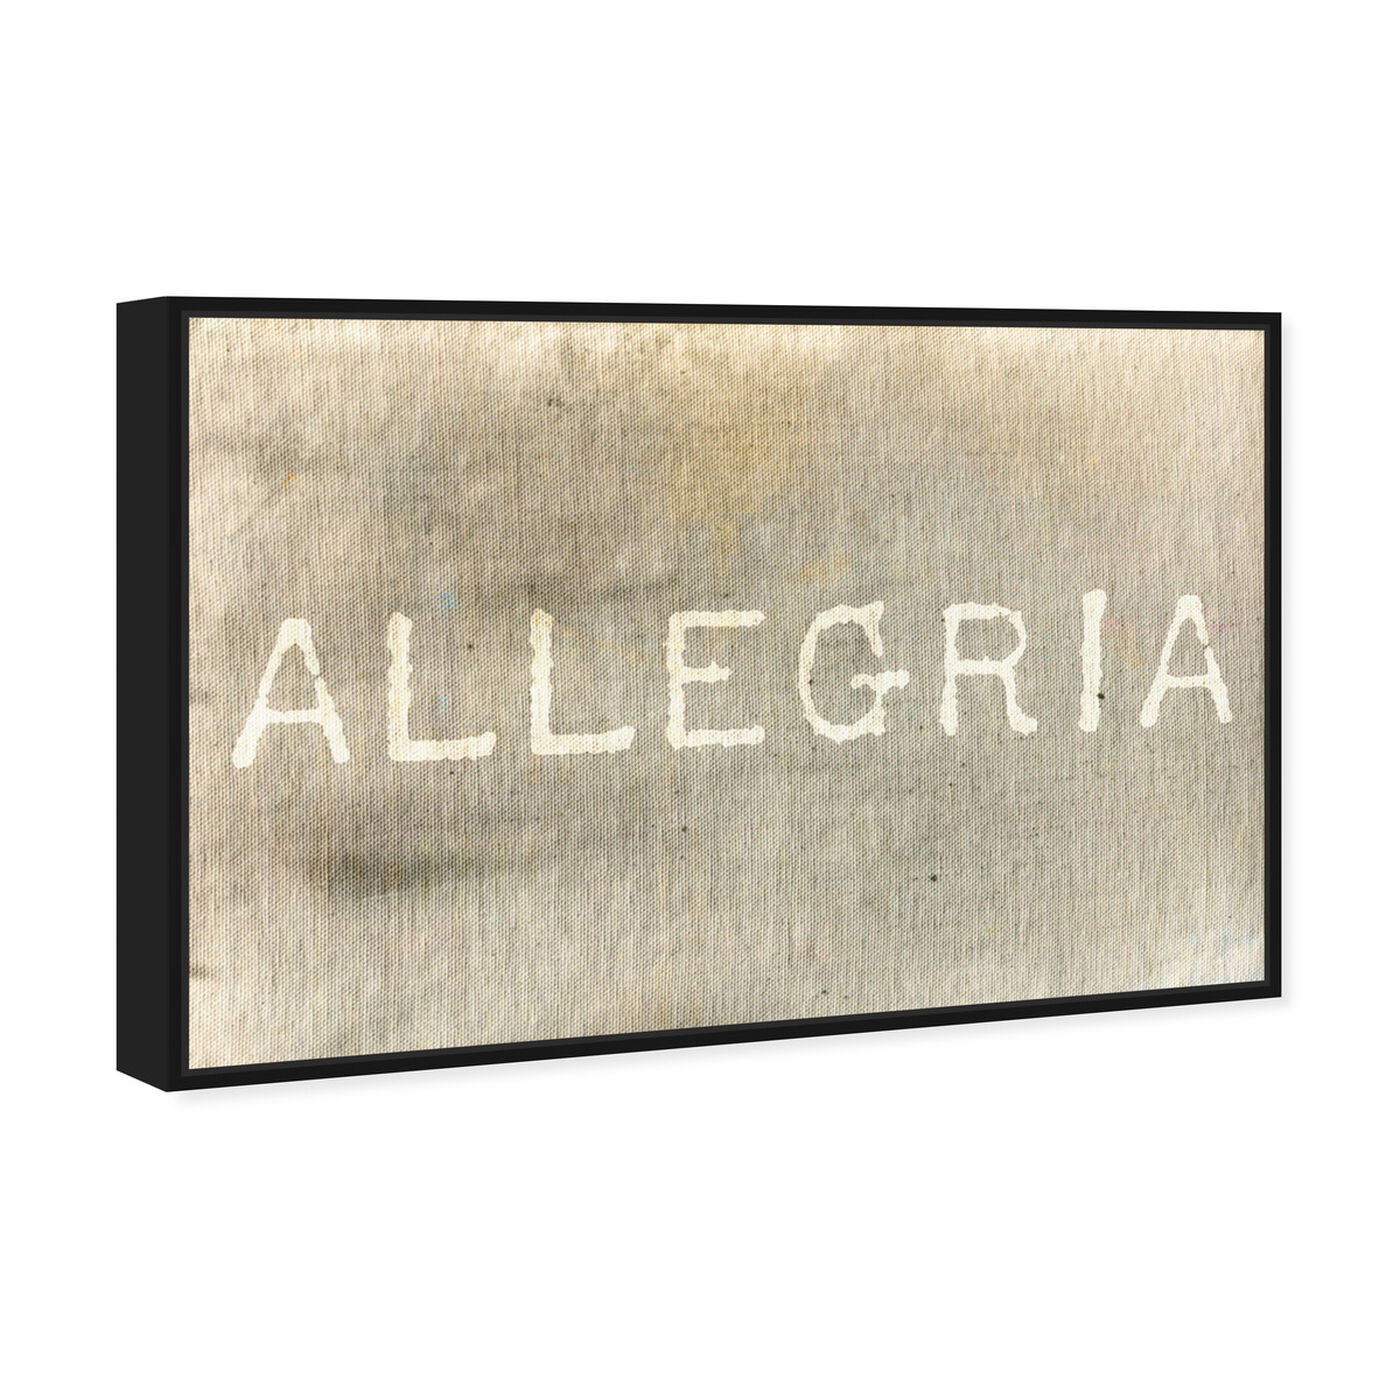 Angled view of Allegria featuring typography and quotes and inspirational quotes and sayings art.